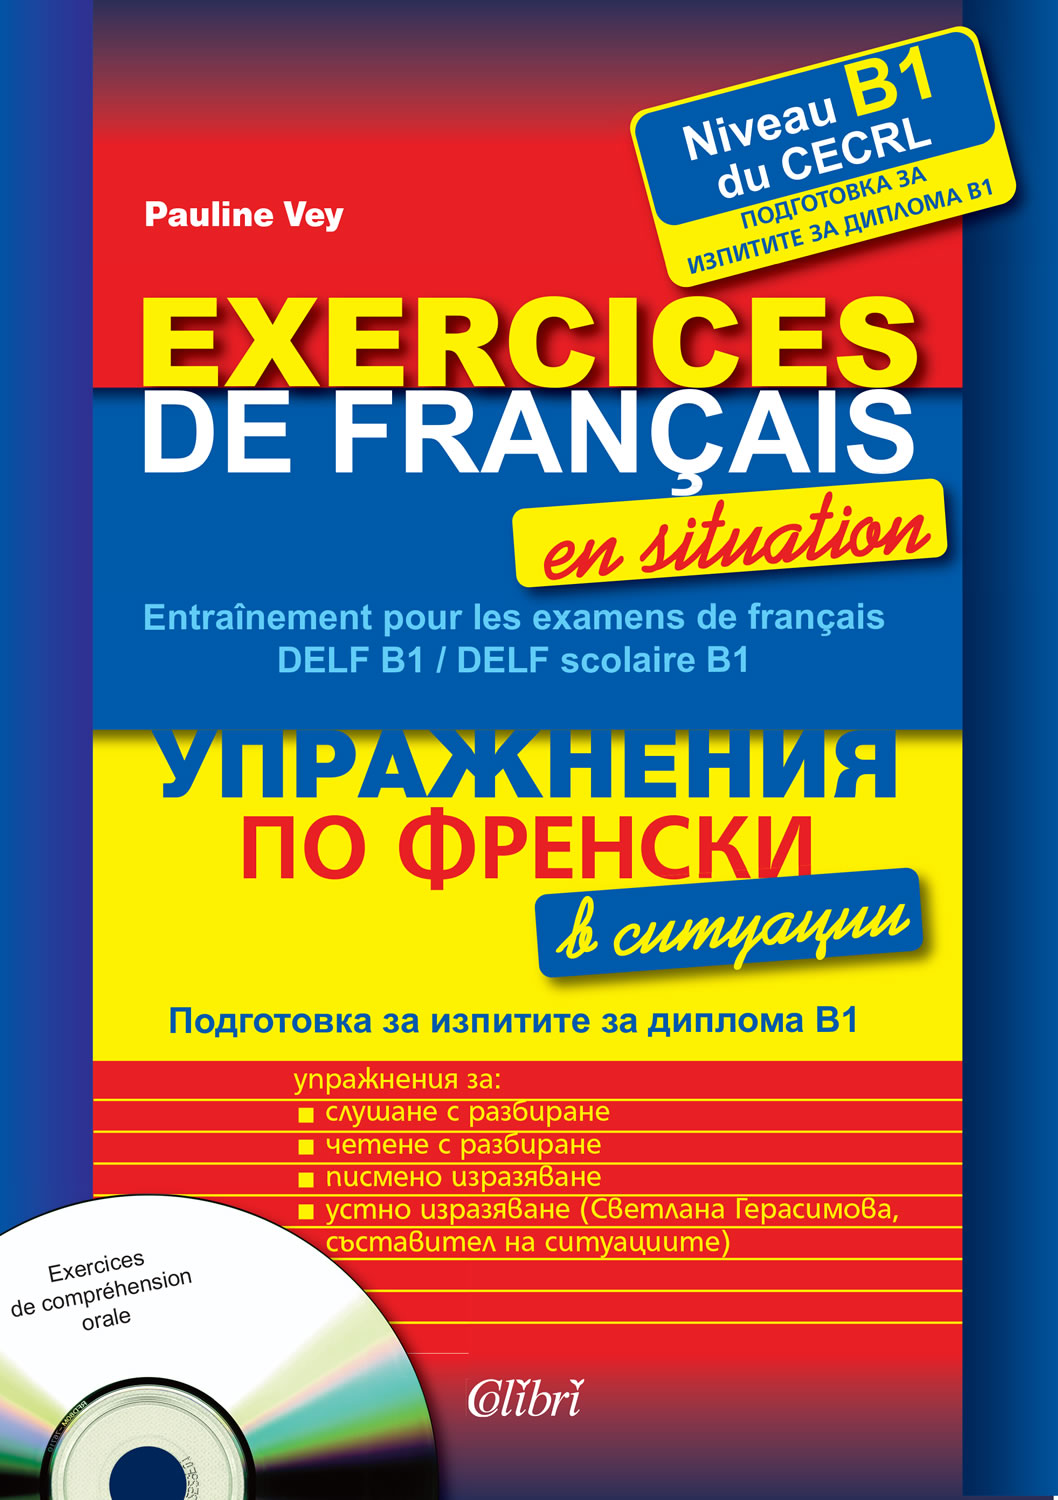 Exercices de français en situation (Niveau B1 du CECRL) from — book